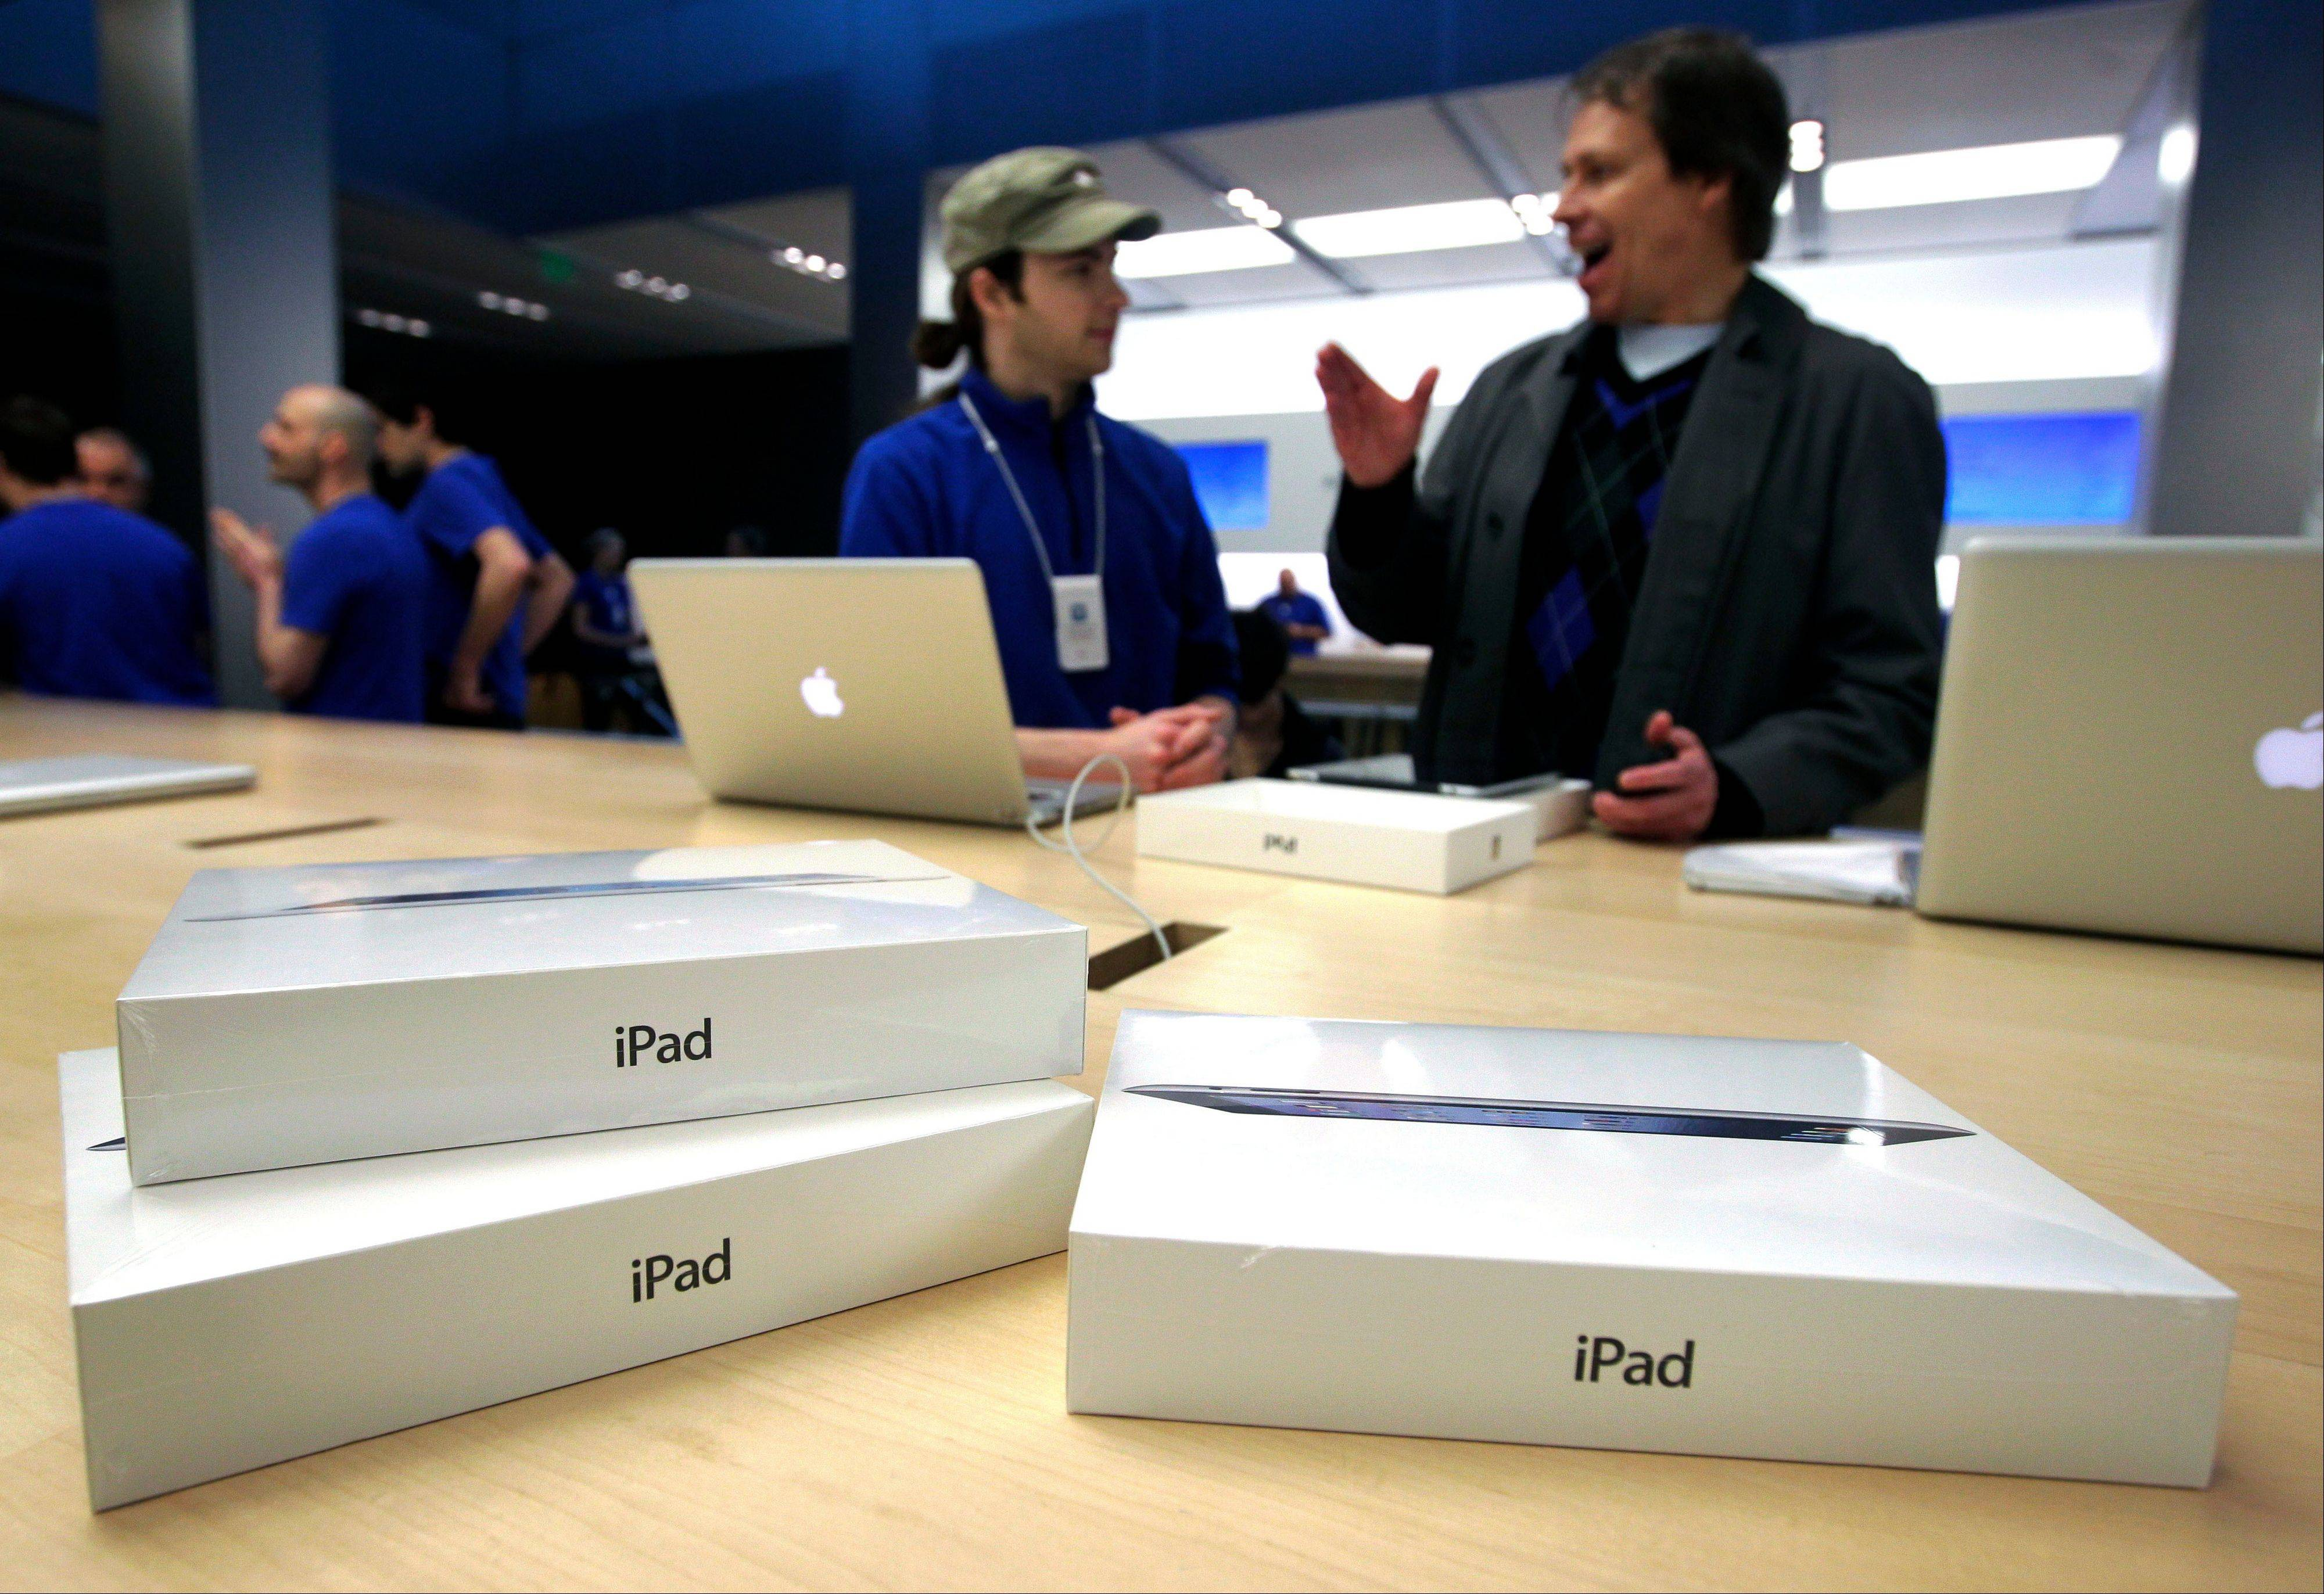 Worldwide shipments of tablet computers slowed down in the second quarter because Apple didn�t release a new model of its trend-setting iPad, research firm IDC said Monday, Aug. 5, 2013. Shipments totaled 45.1 million units in the April-June period of 2013, down nearly 10 percent from the first three months of the year.